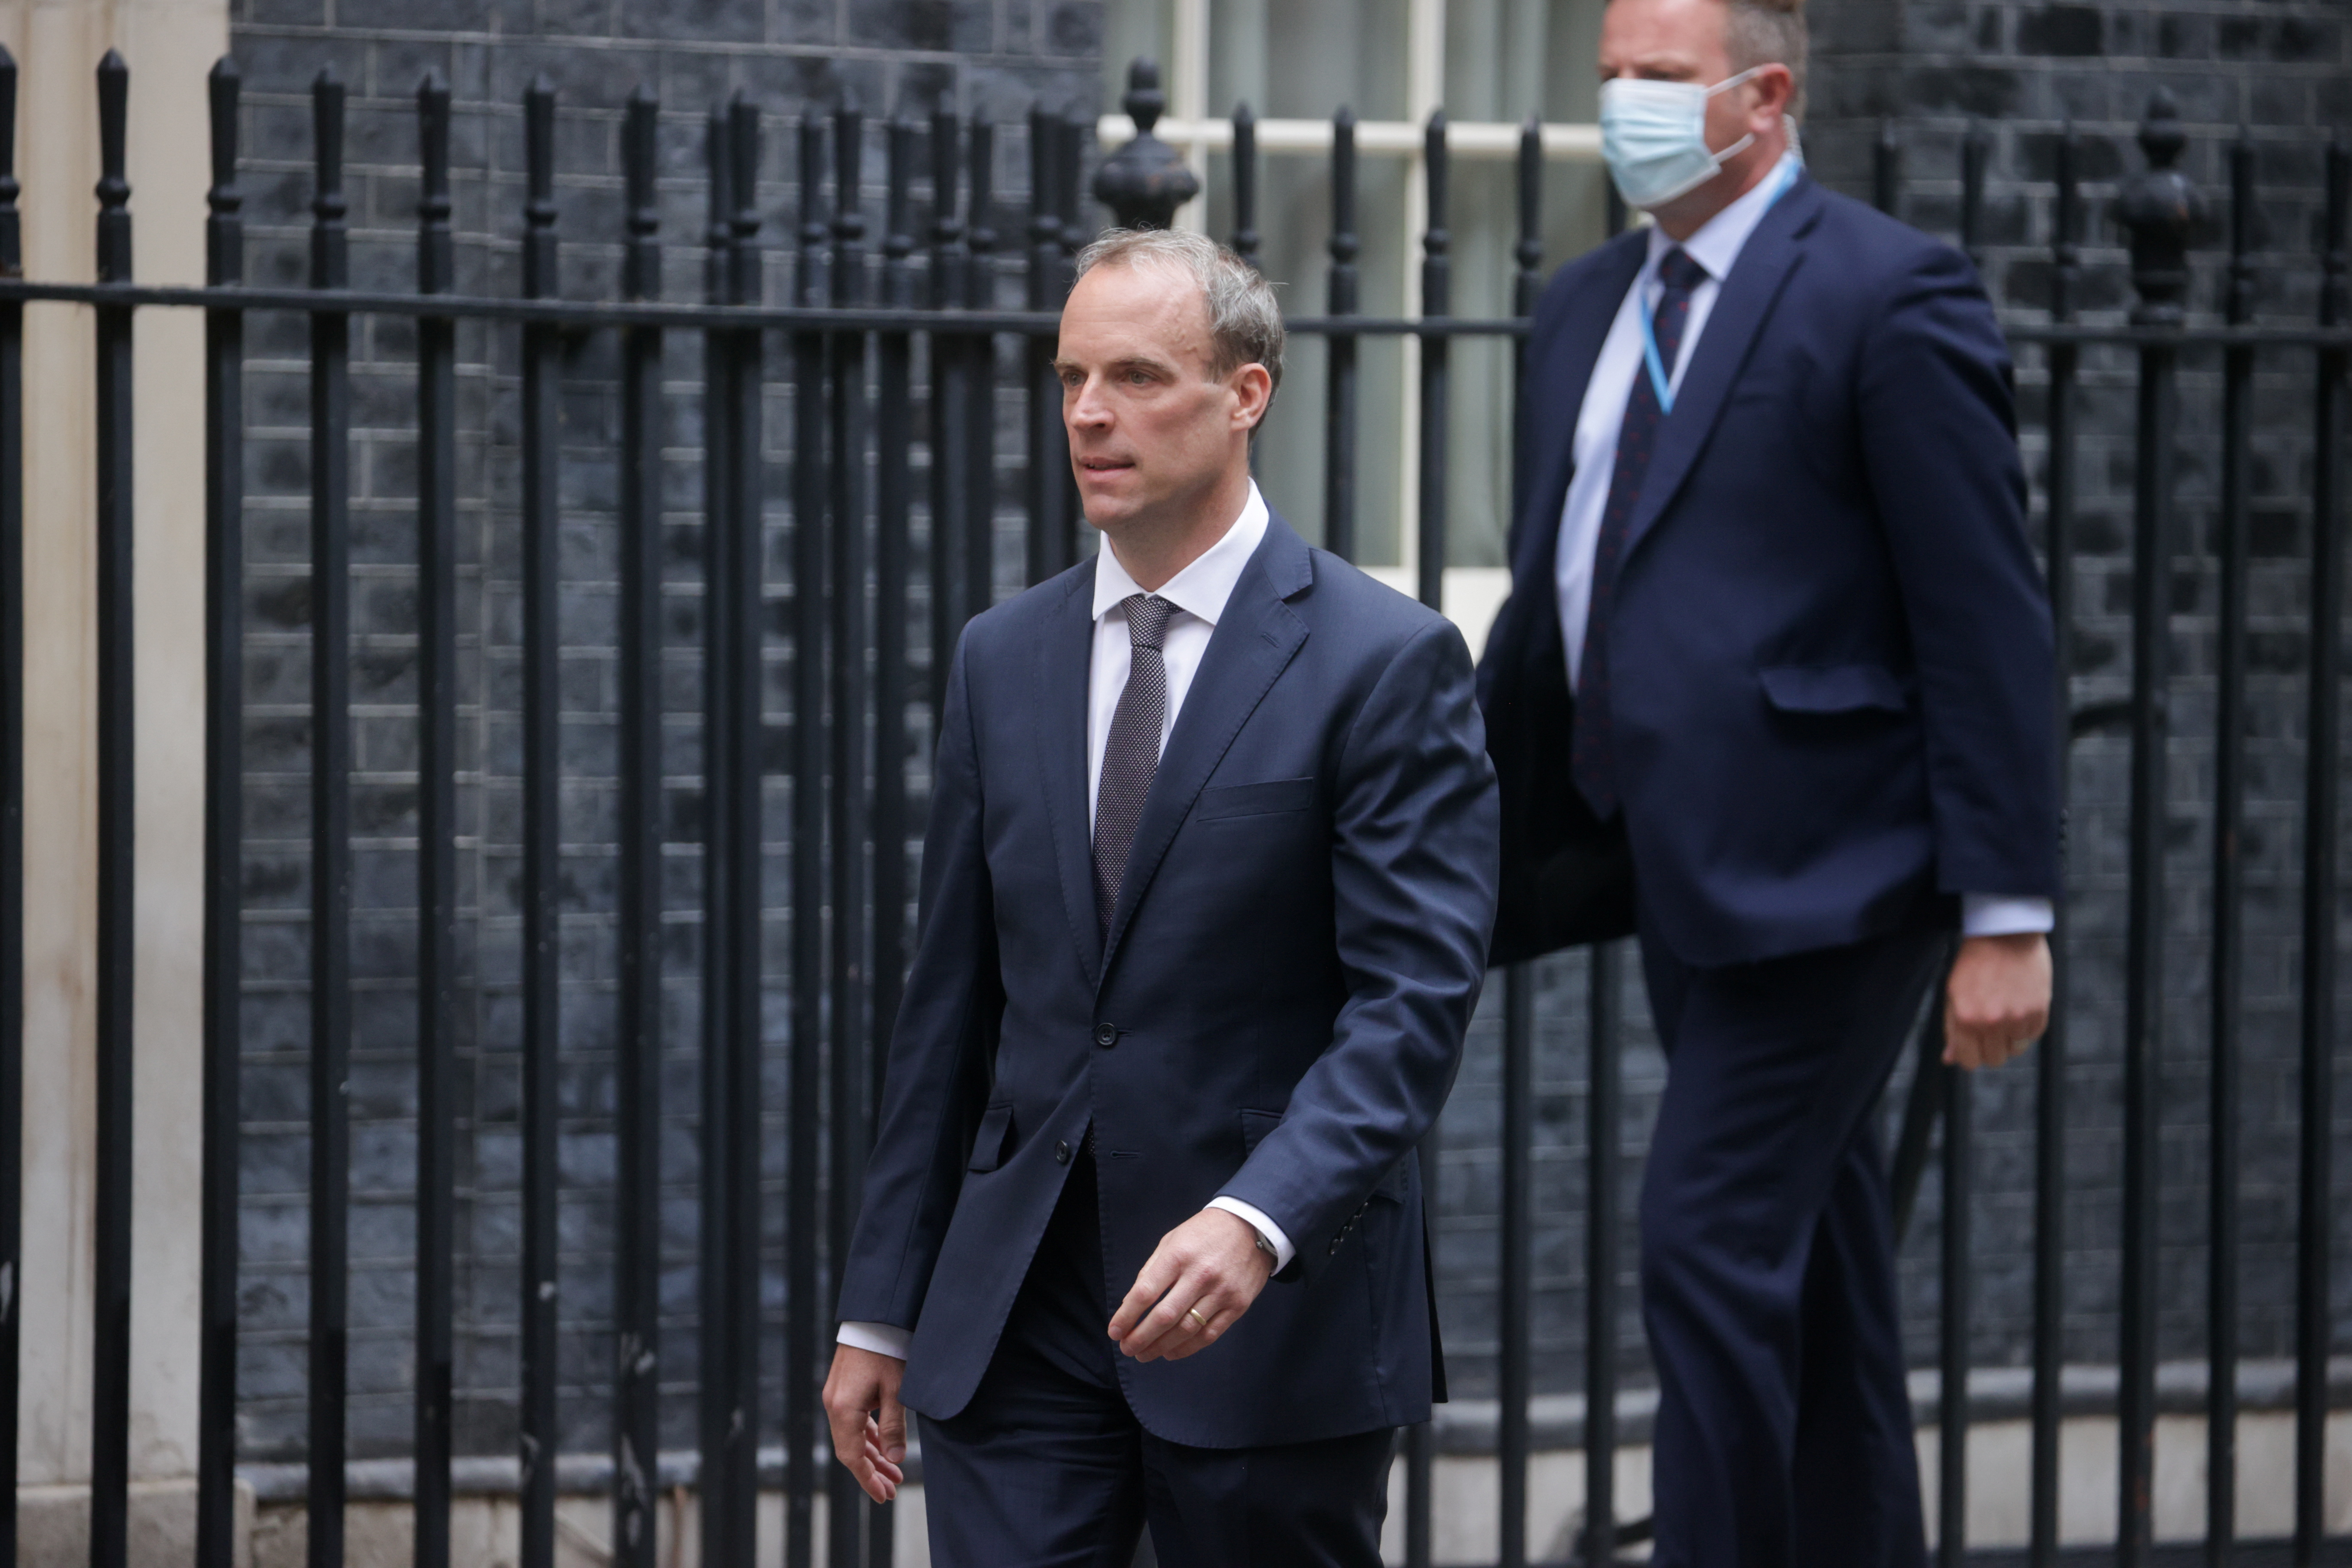 Britain's Foreign Secretary Dominic Raab walks outside Downing Street in London, Britain, August 19, 2021. REUTERS/Hannah McKay